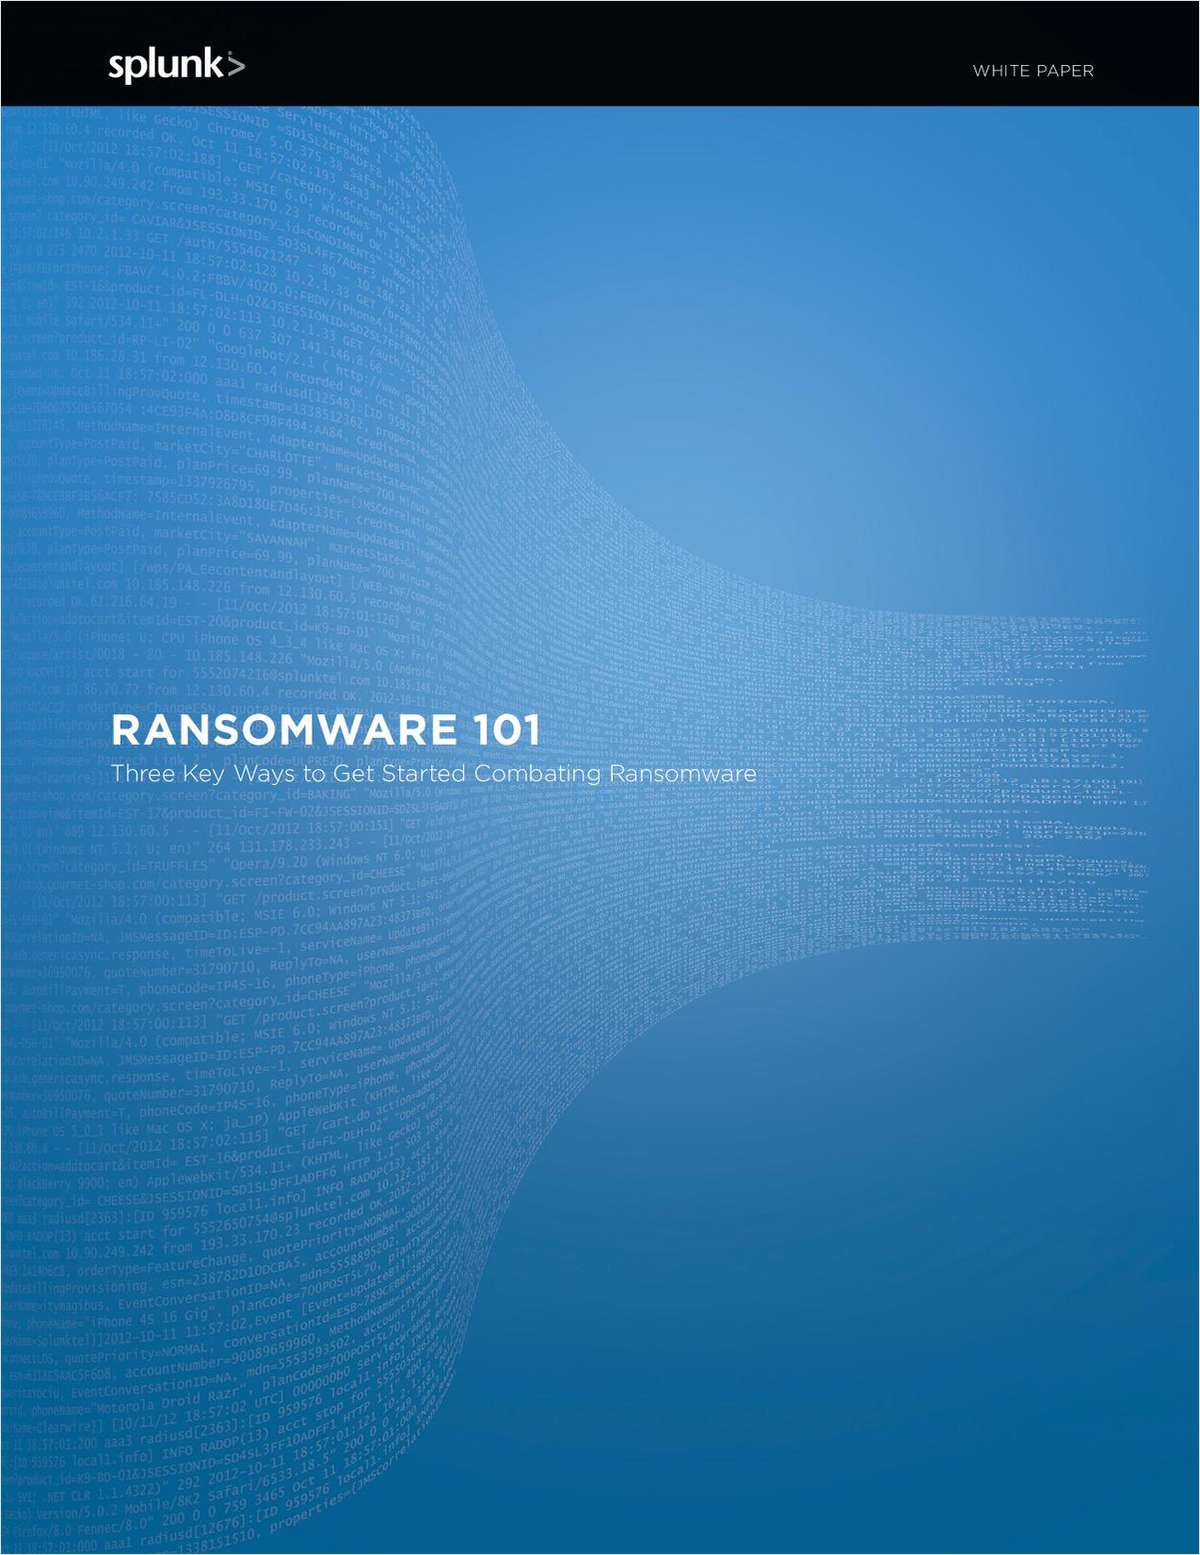 Ransomware 101: 3 Key Ways to Get Started Combating Ransomware